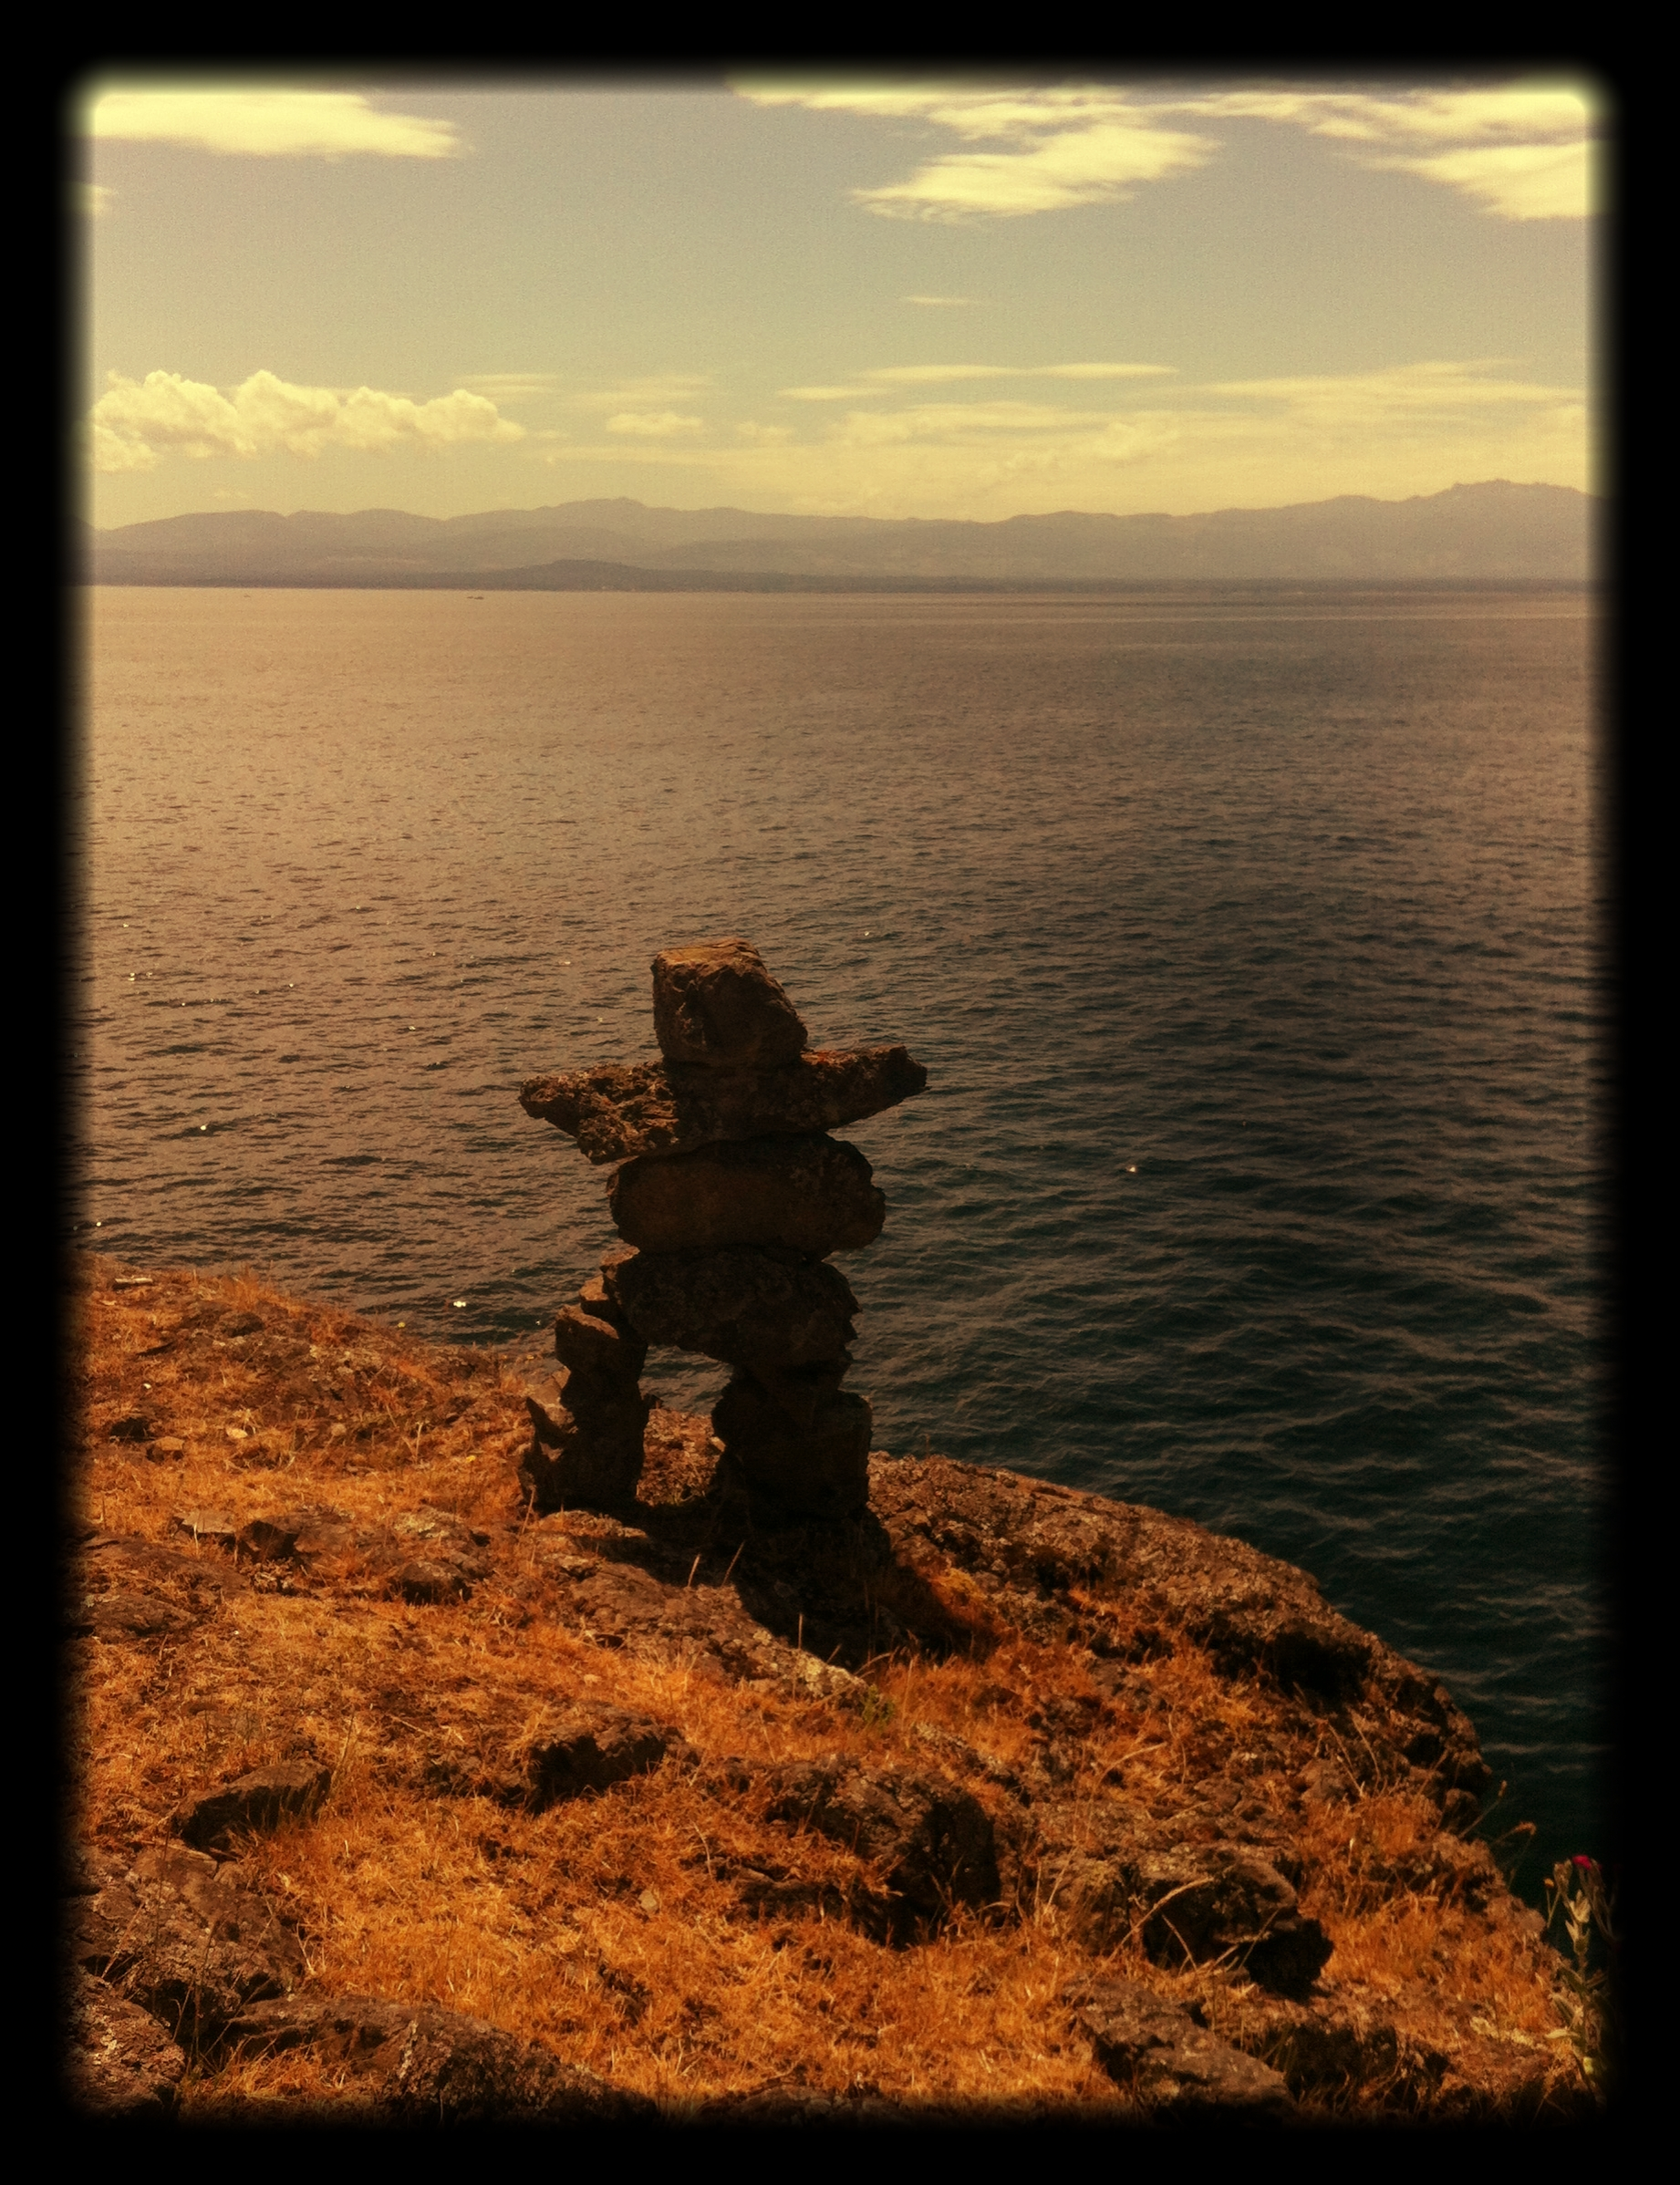 An_Inukshuk_over_looking_a_vast_ocean